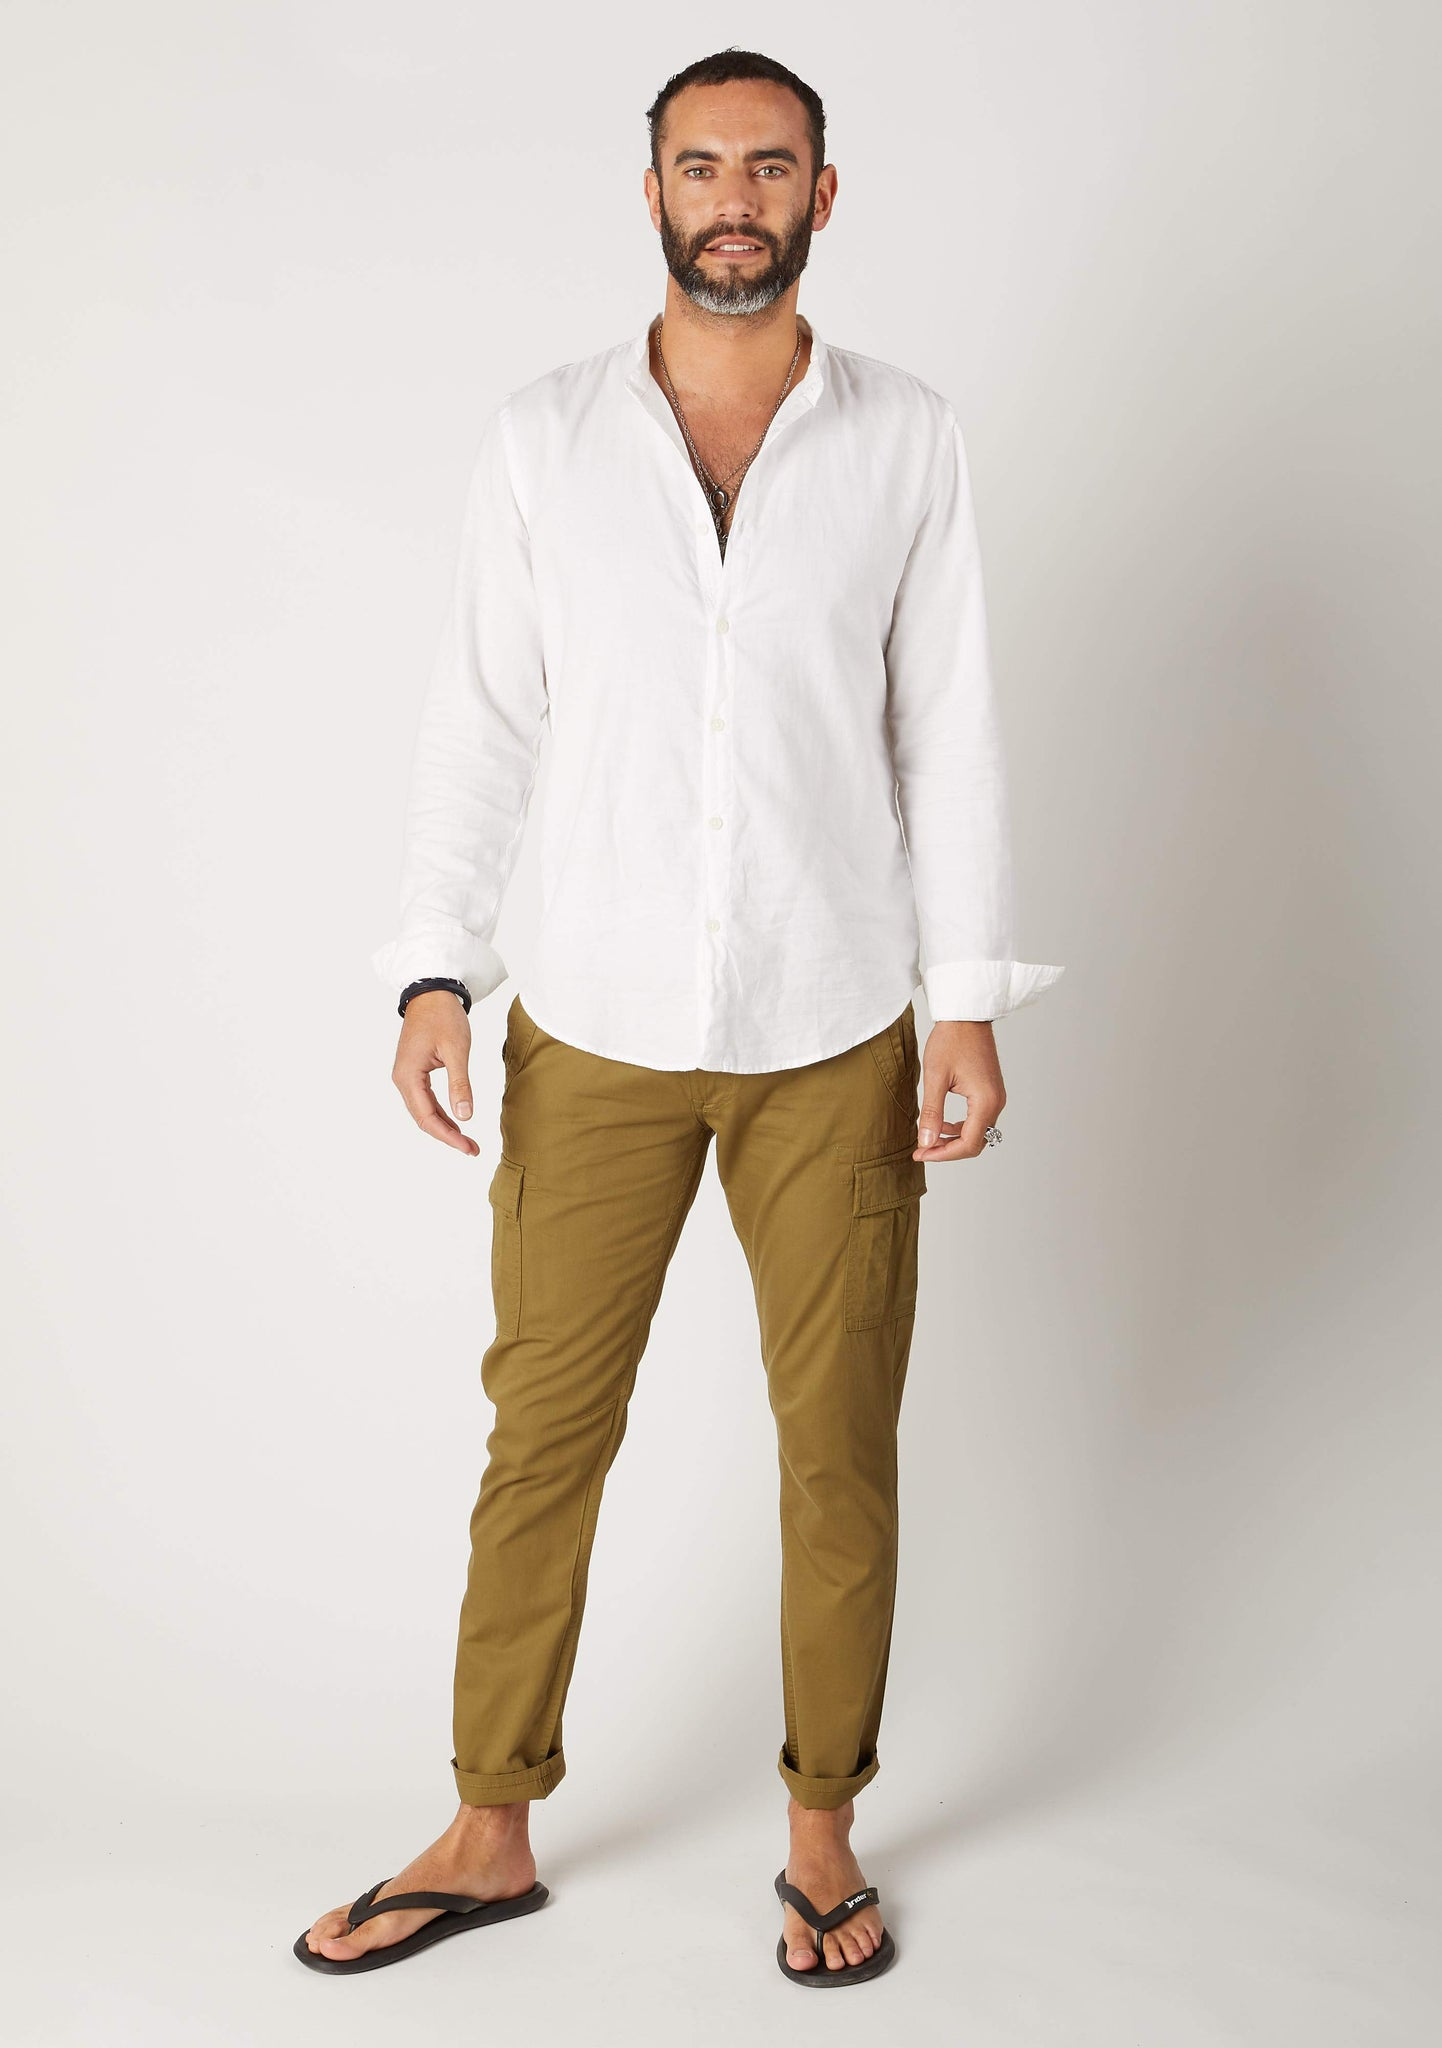 Full-length frontal pose wearing 'Radcliffe' style men's olive organic cotton slim fit cargo trousers.